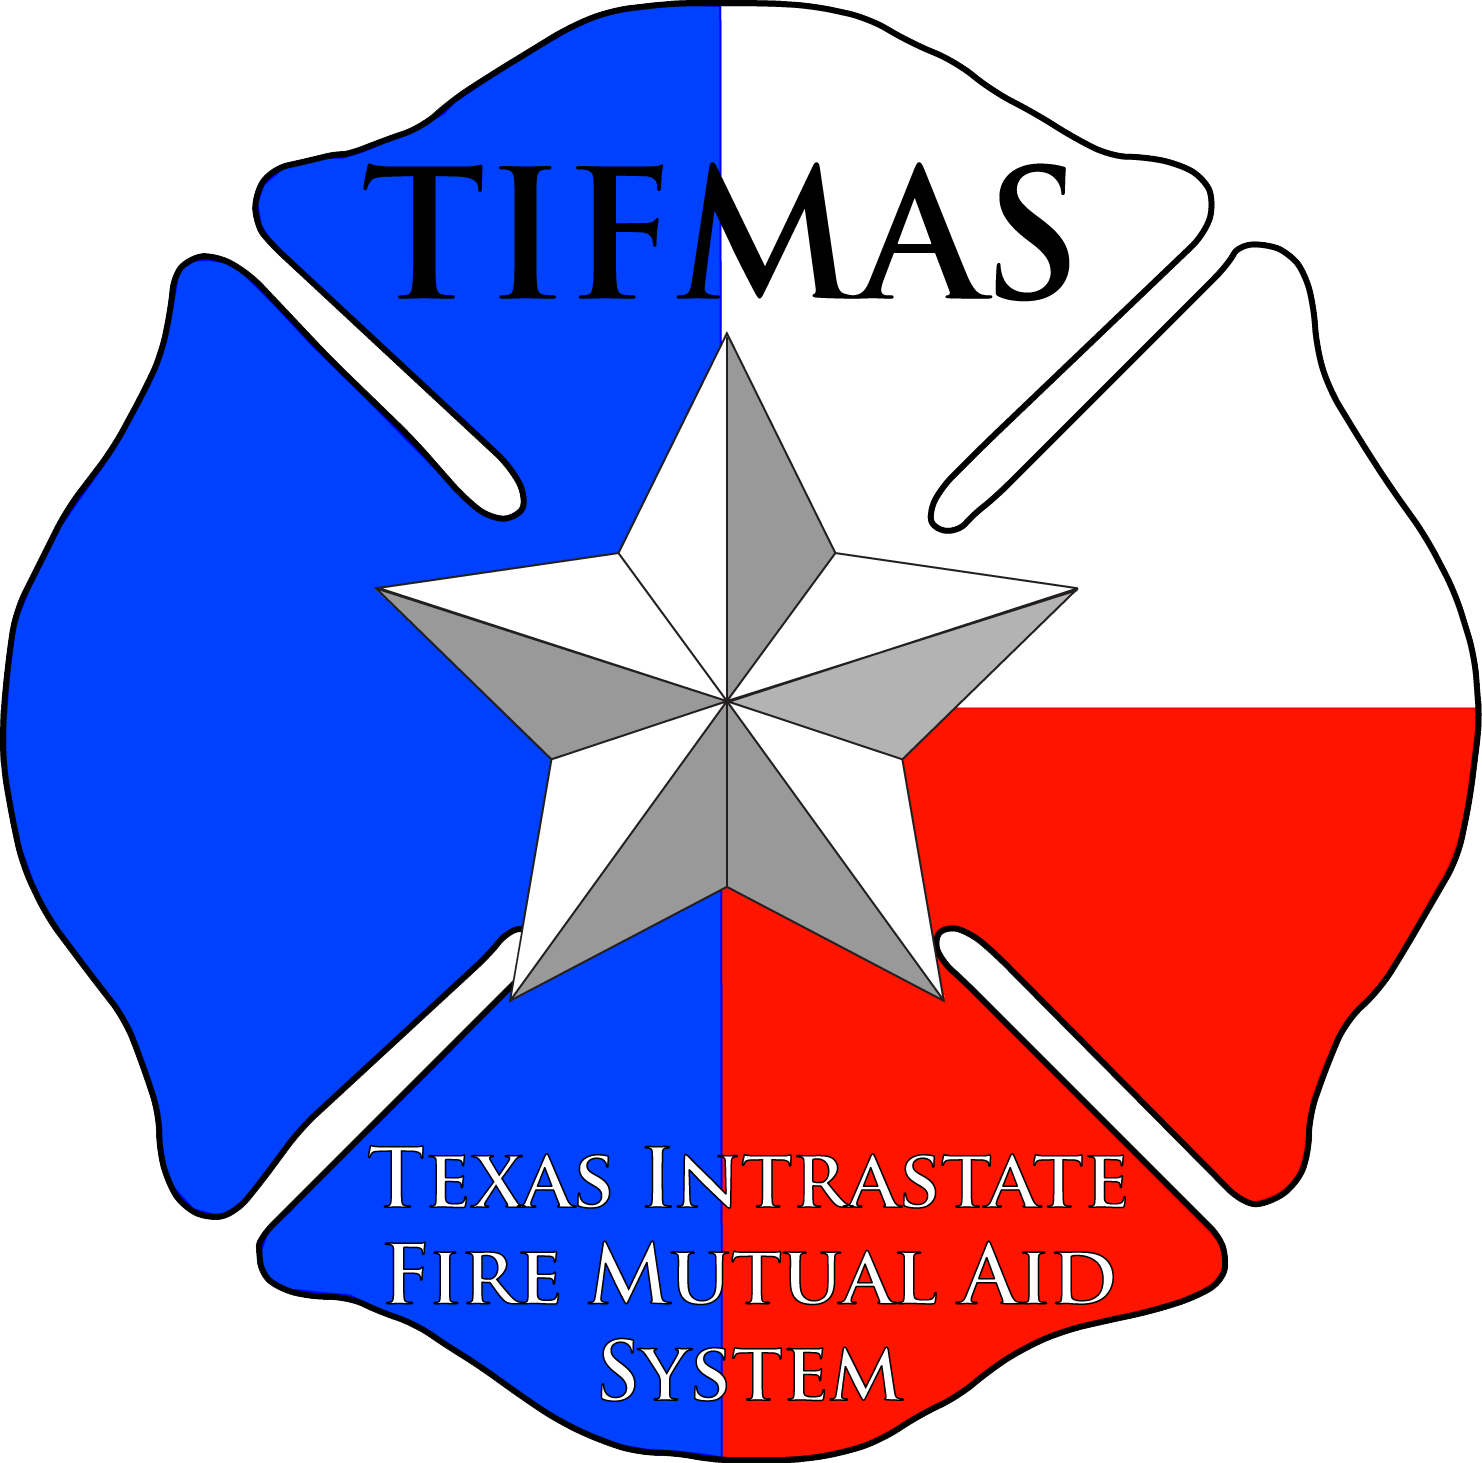 <p>   August 7, 2018 — COLLEGE STATION, Texas — Some 98 firefighters from 29 Texas fire departments in 20 counties will head to California this week to fight wildfires that have burned more than 750,000 acres. The deployment is an activation of the Texas Intrastate Fire Mutual Aid System (TIFMAS) for wildfire suppression </p>